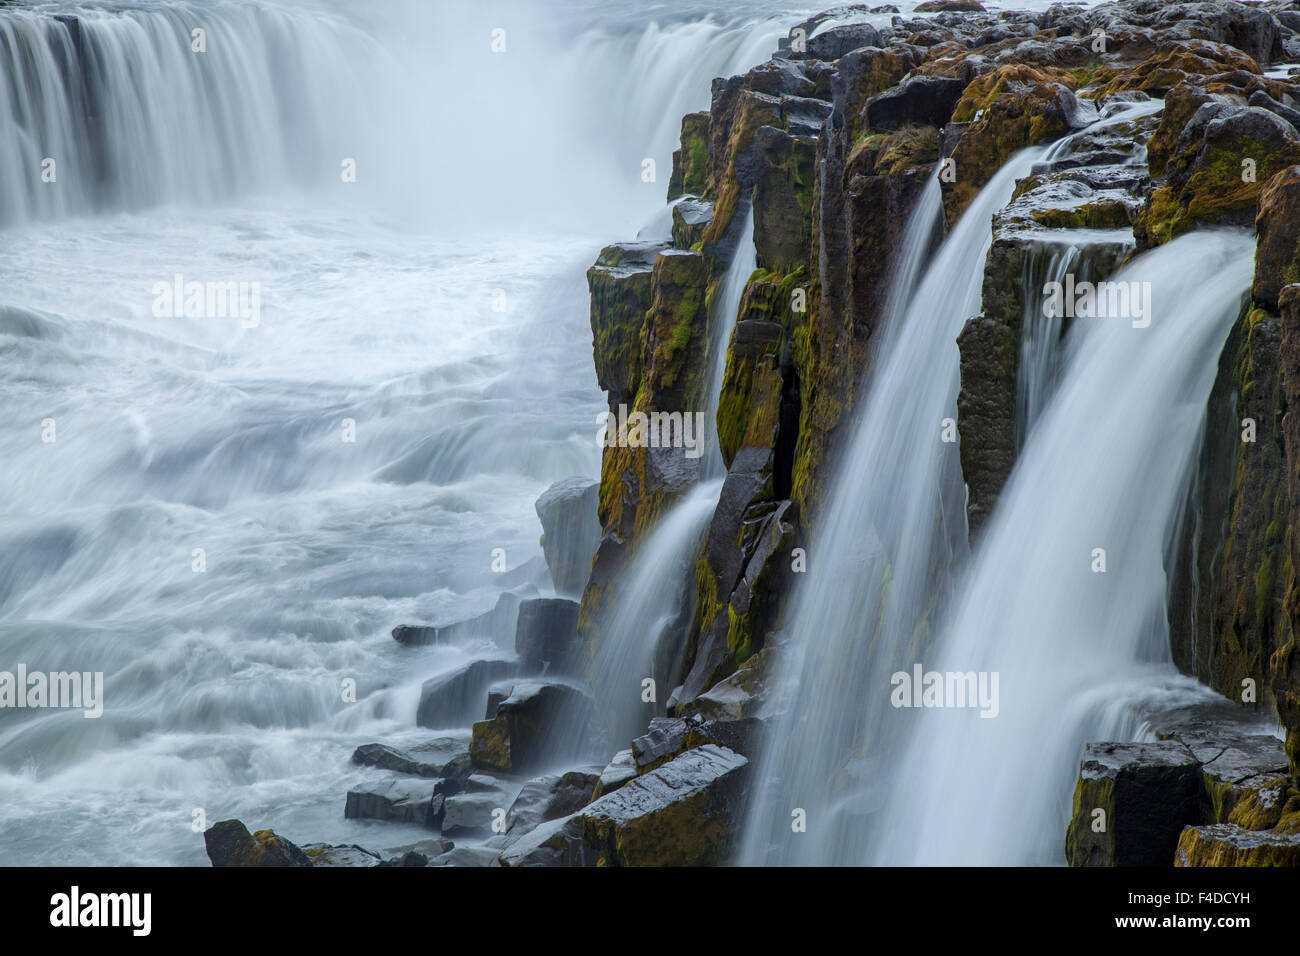 The cliffs and cascades of Godafoss waterfall, Nordhurland Eystra, Iceland. - Stock Image